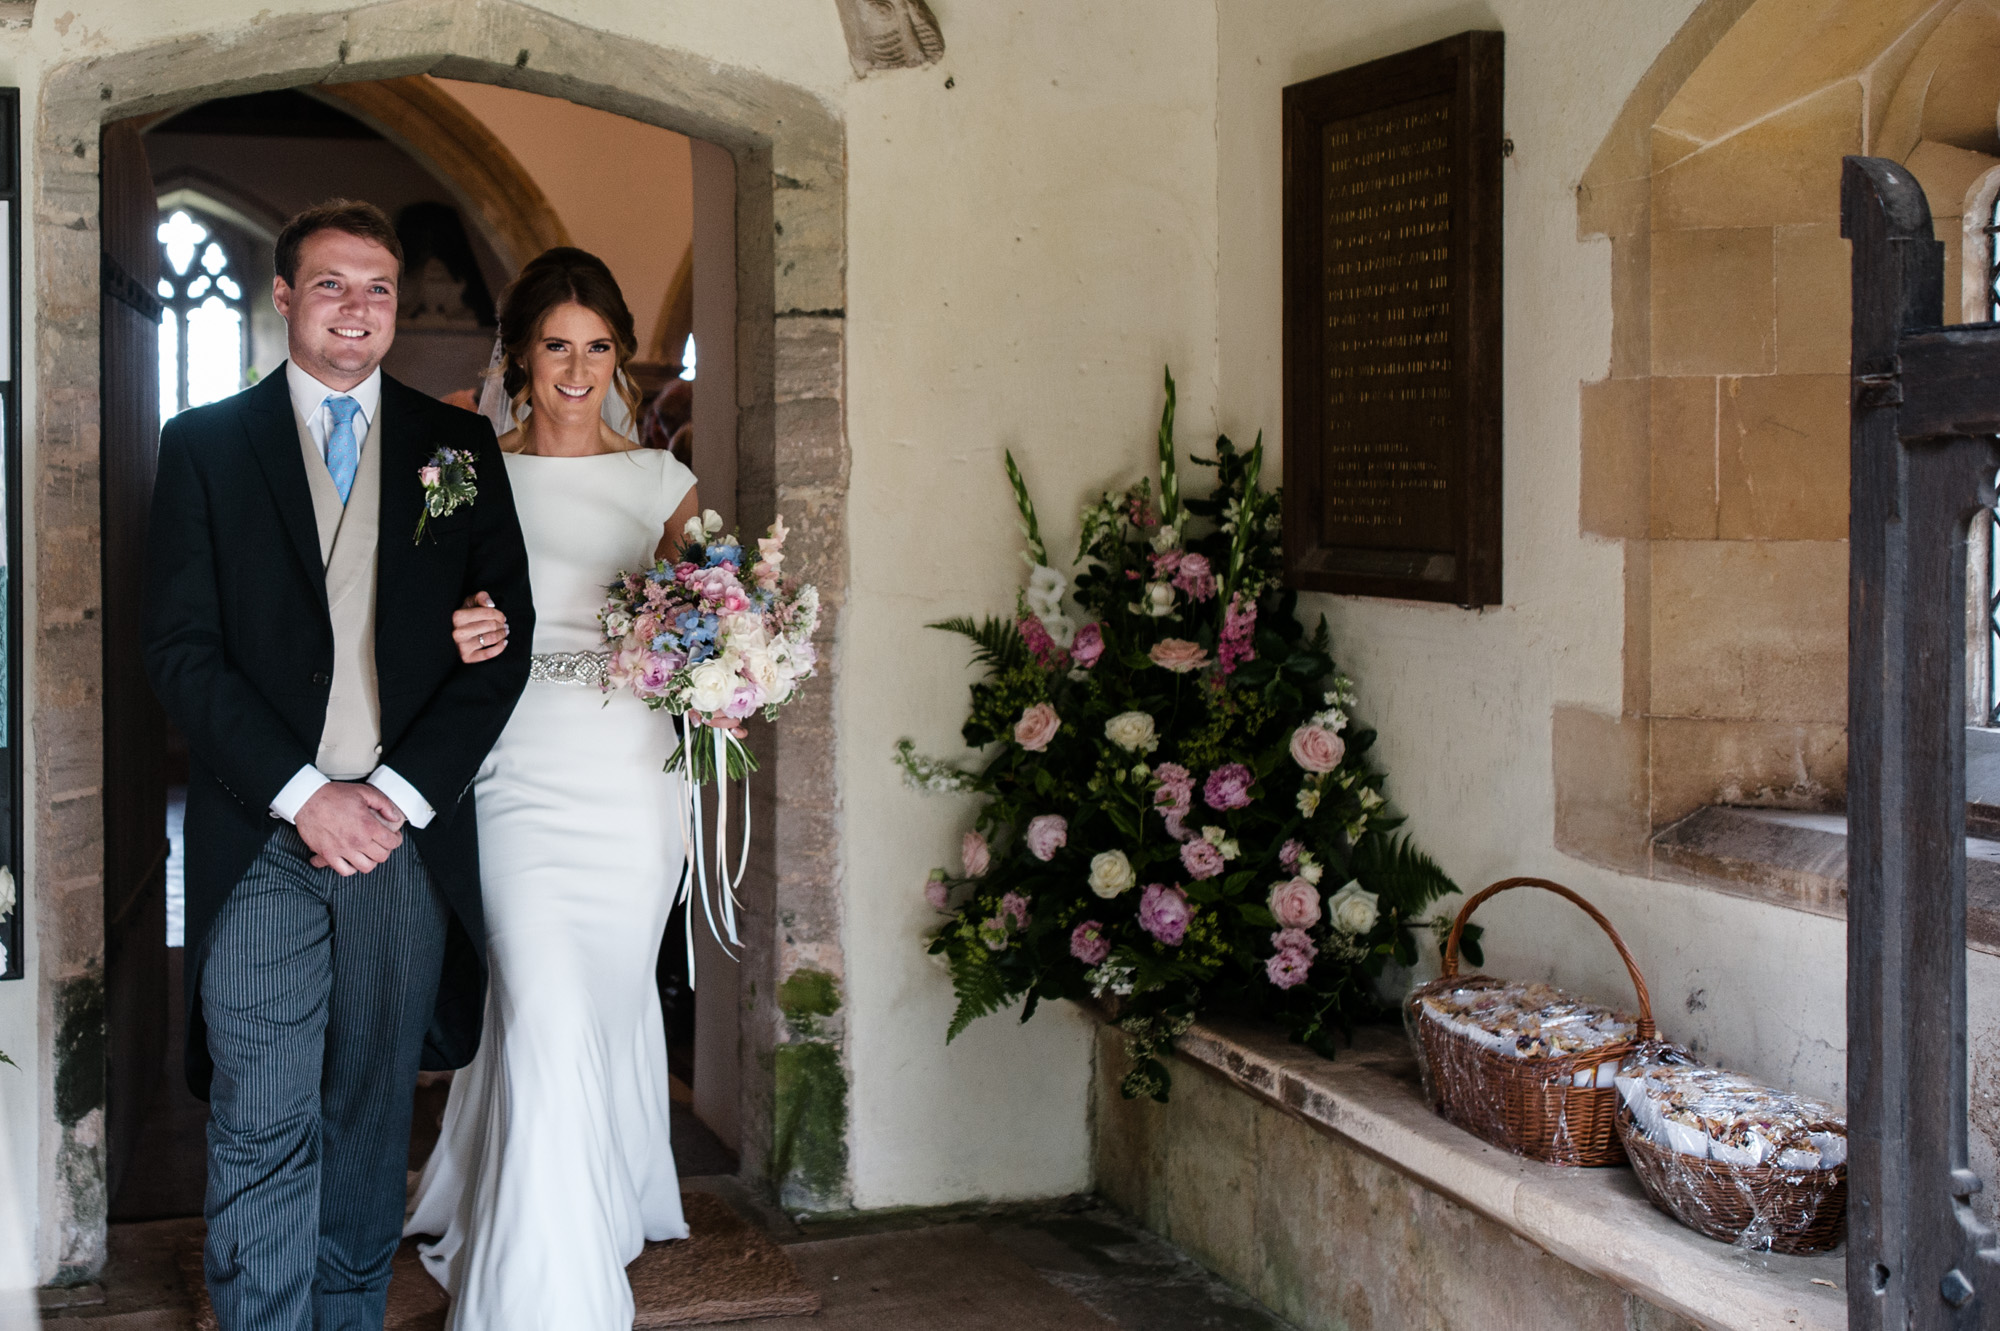 Cotswold Wedding Photography 11.09.1816.jpg